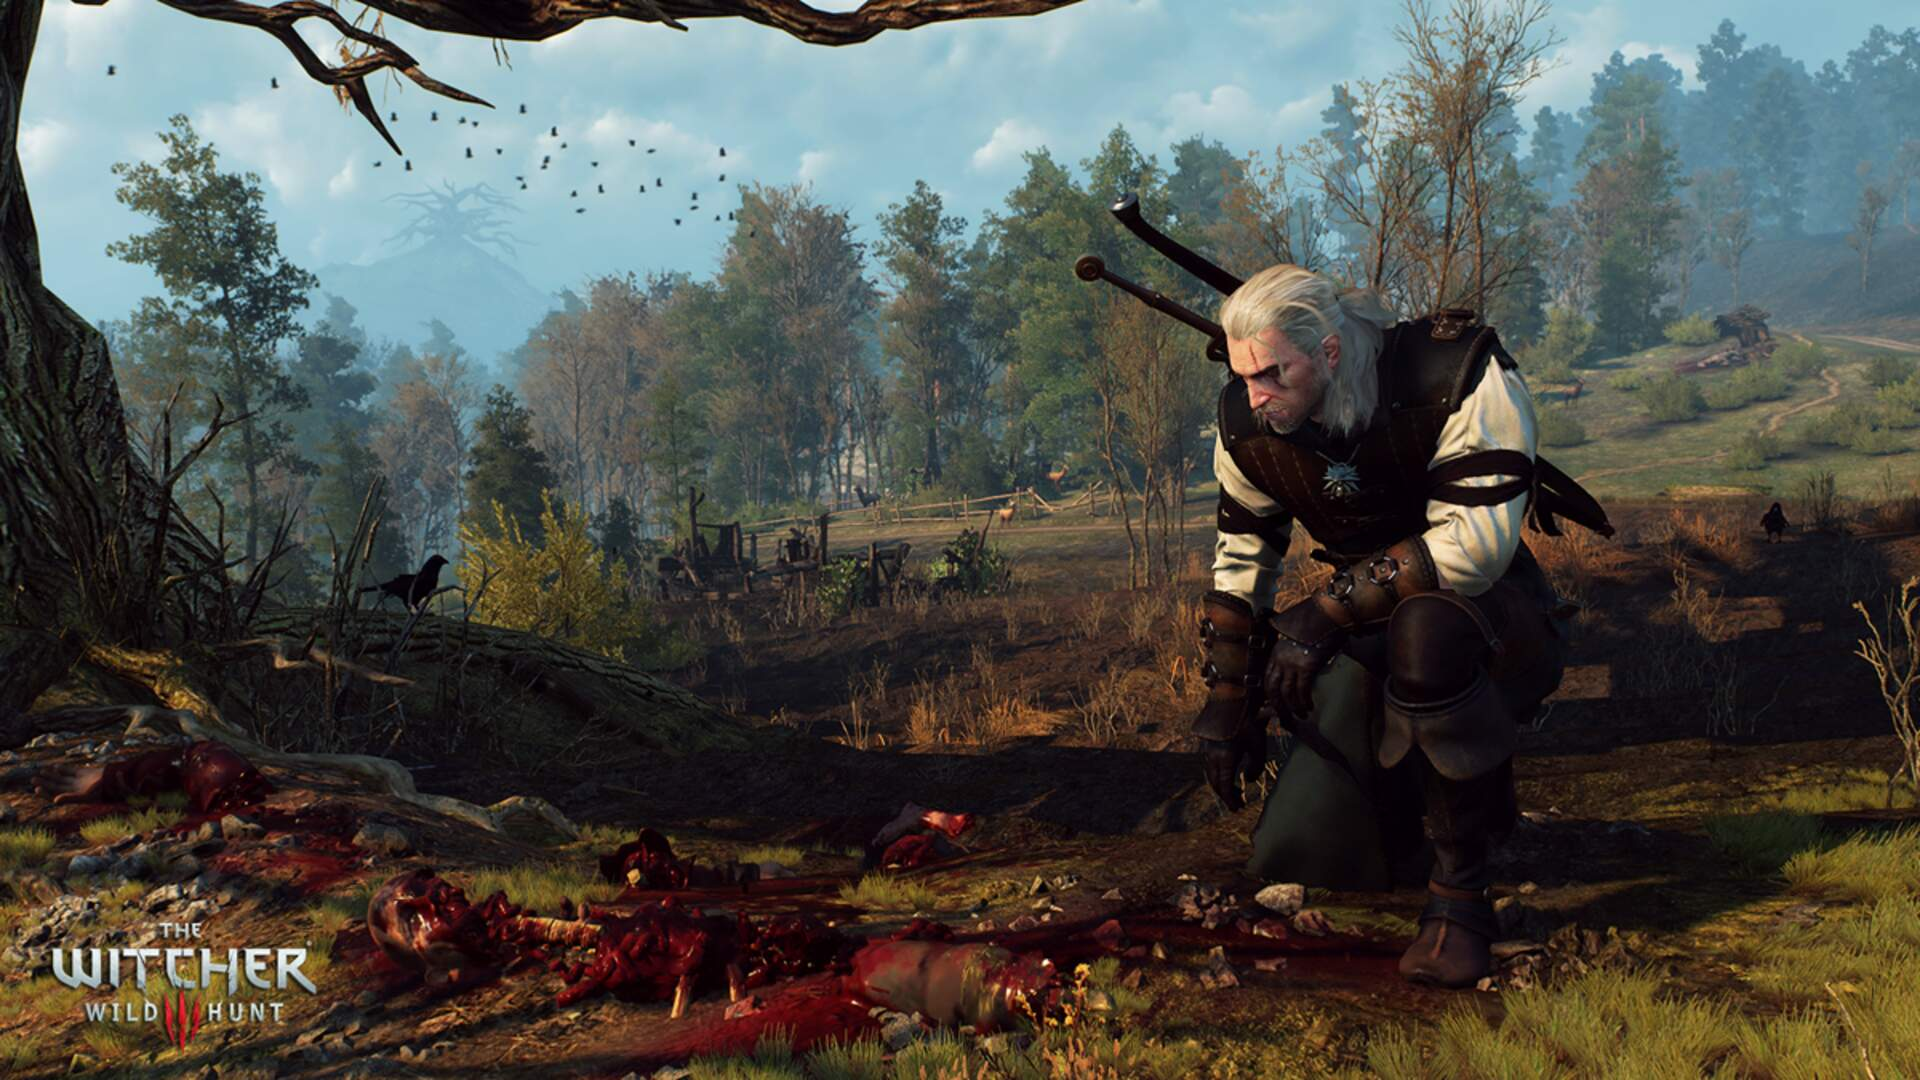 The Witcher 3: Where to Get the Geralt of Rivia Gwent Card